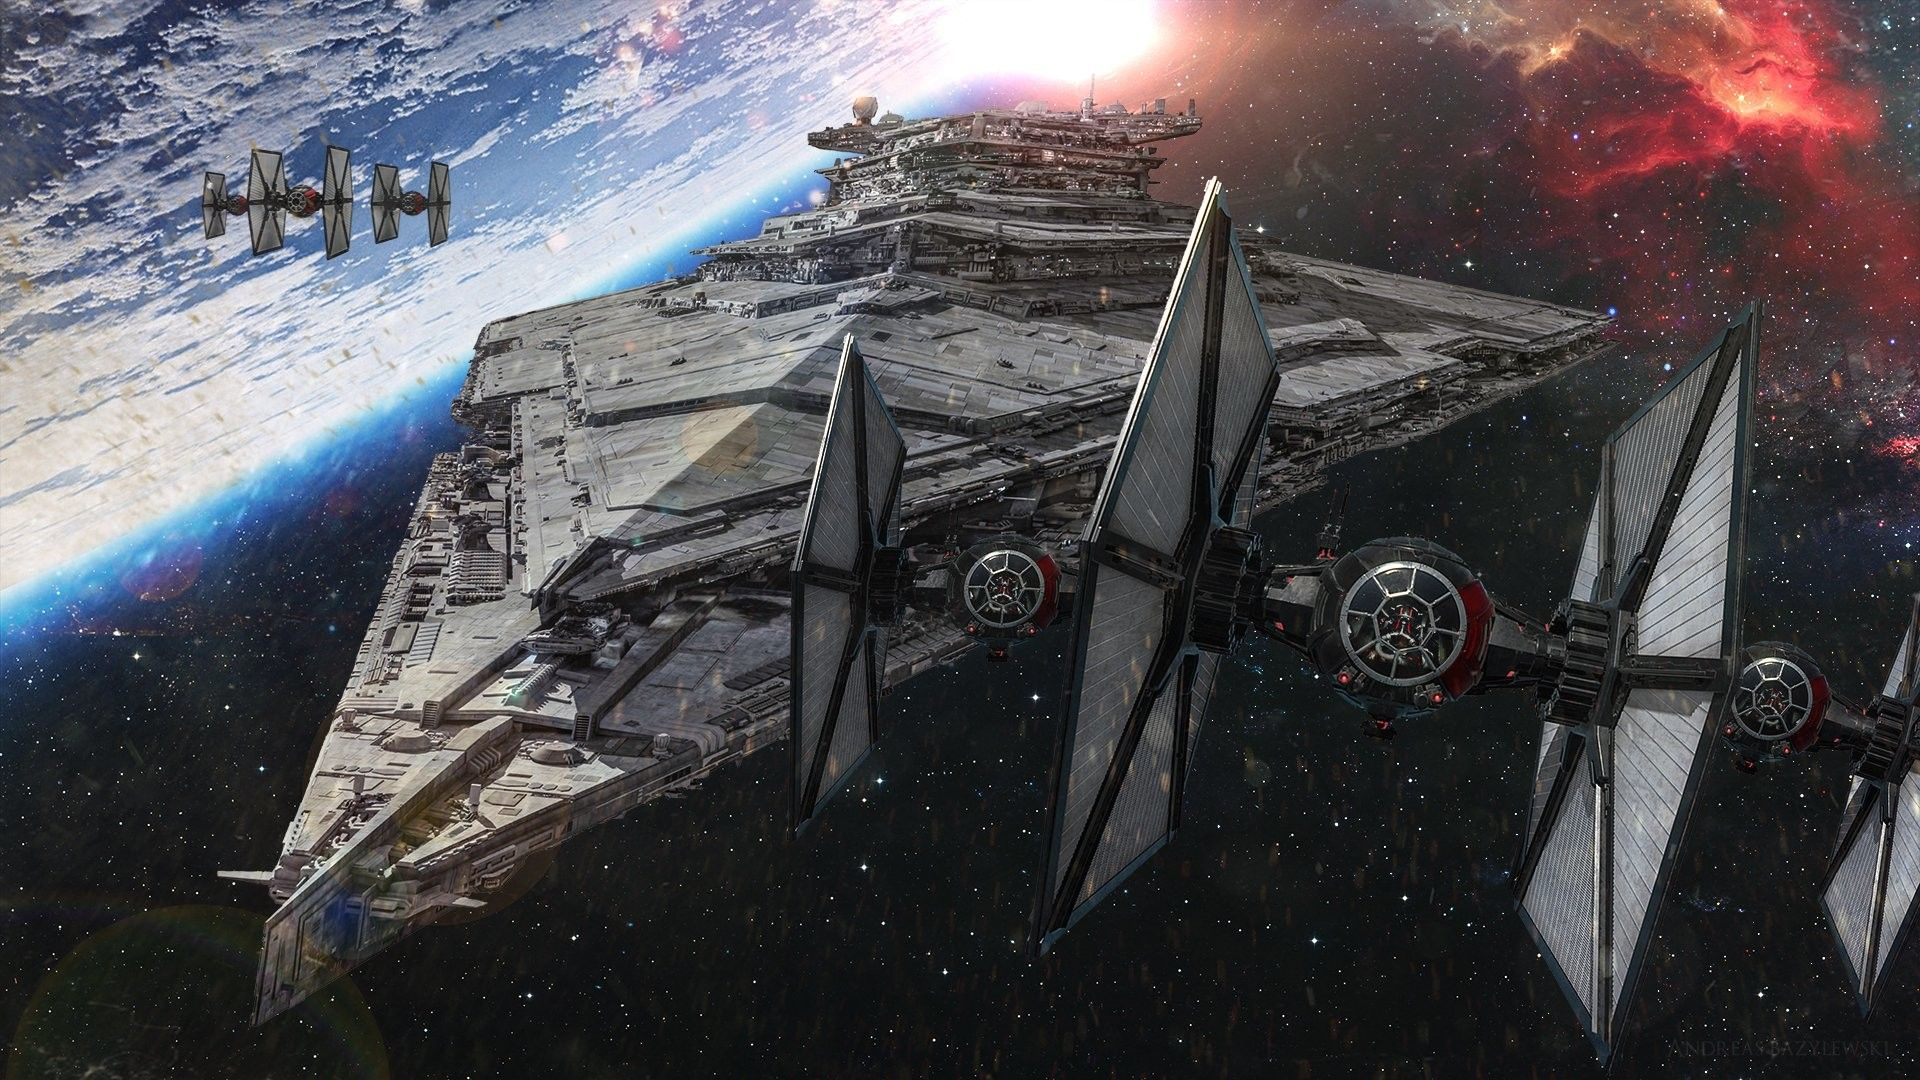 Tie Fighter Wallpapers Top Free Tie Fighter Backgrounds Wallpaperaccess